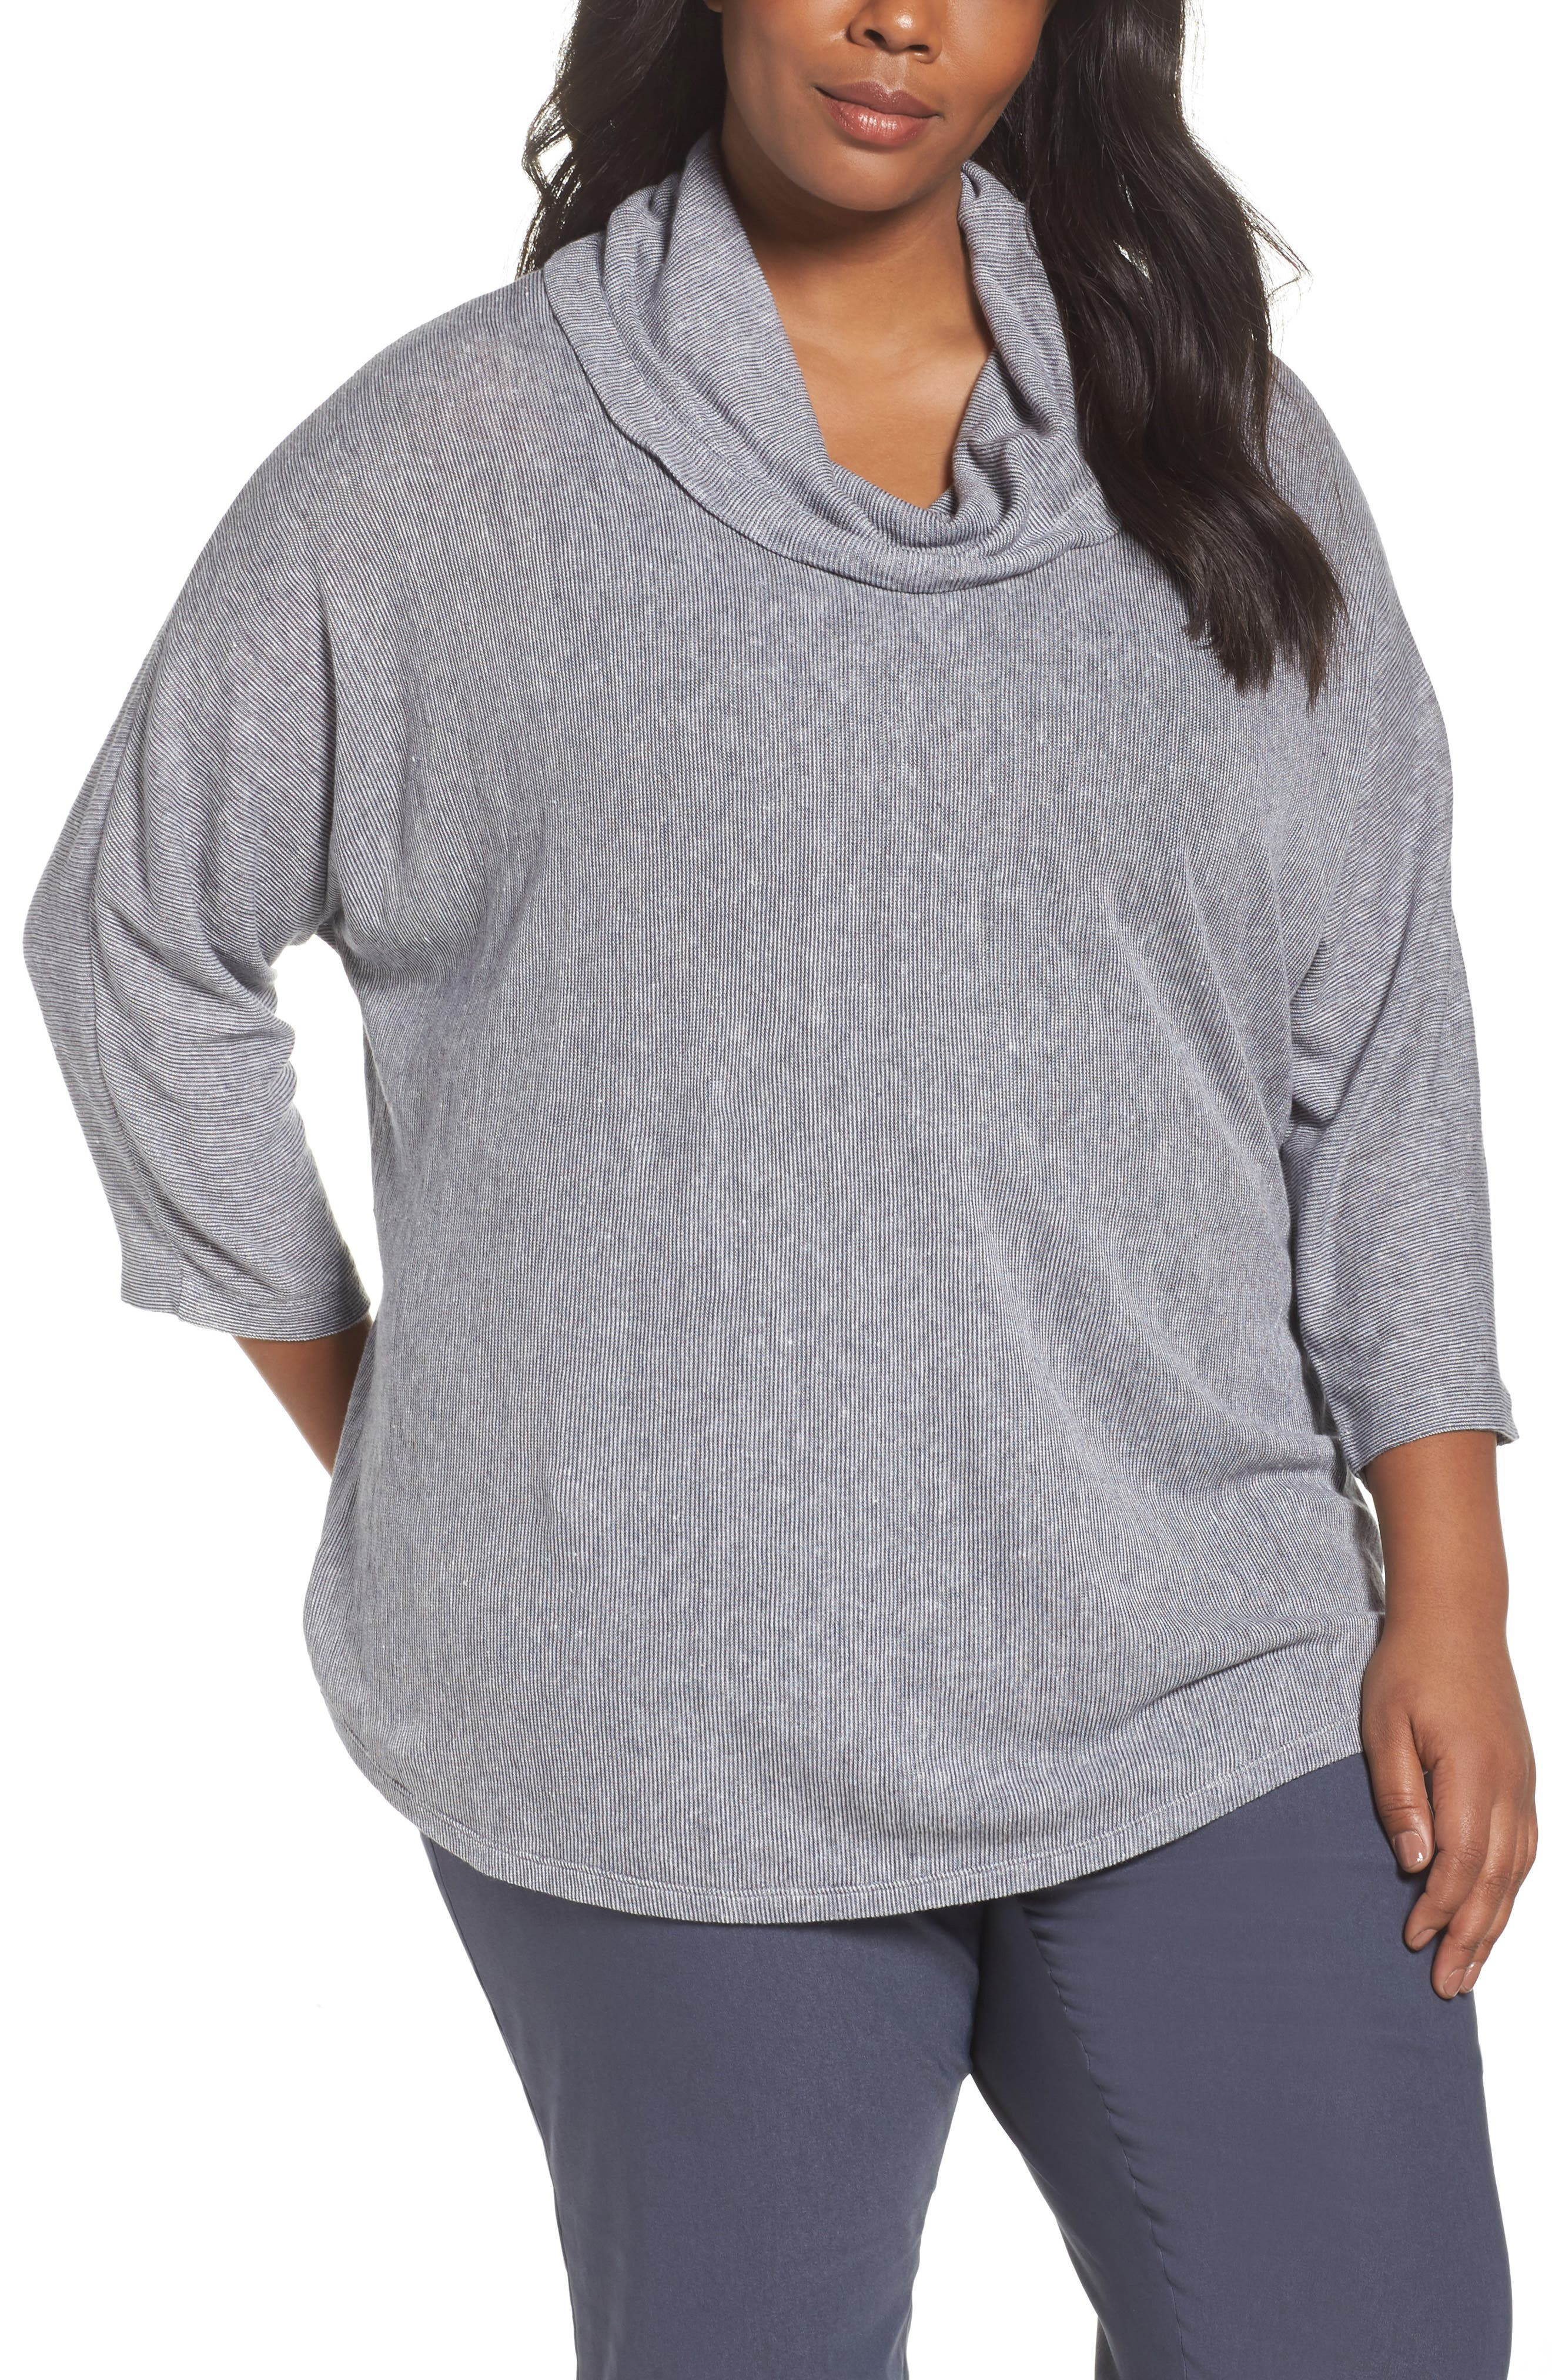 Alternate Image 1 Selected - NIC+ZOE Blissful Cowl Neck Top (Plus Size)